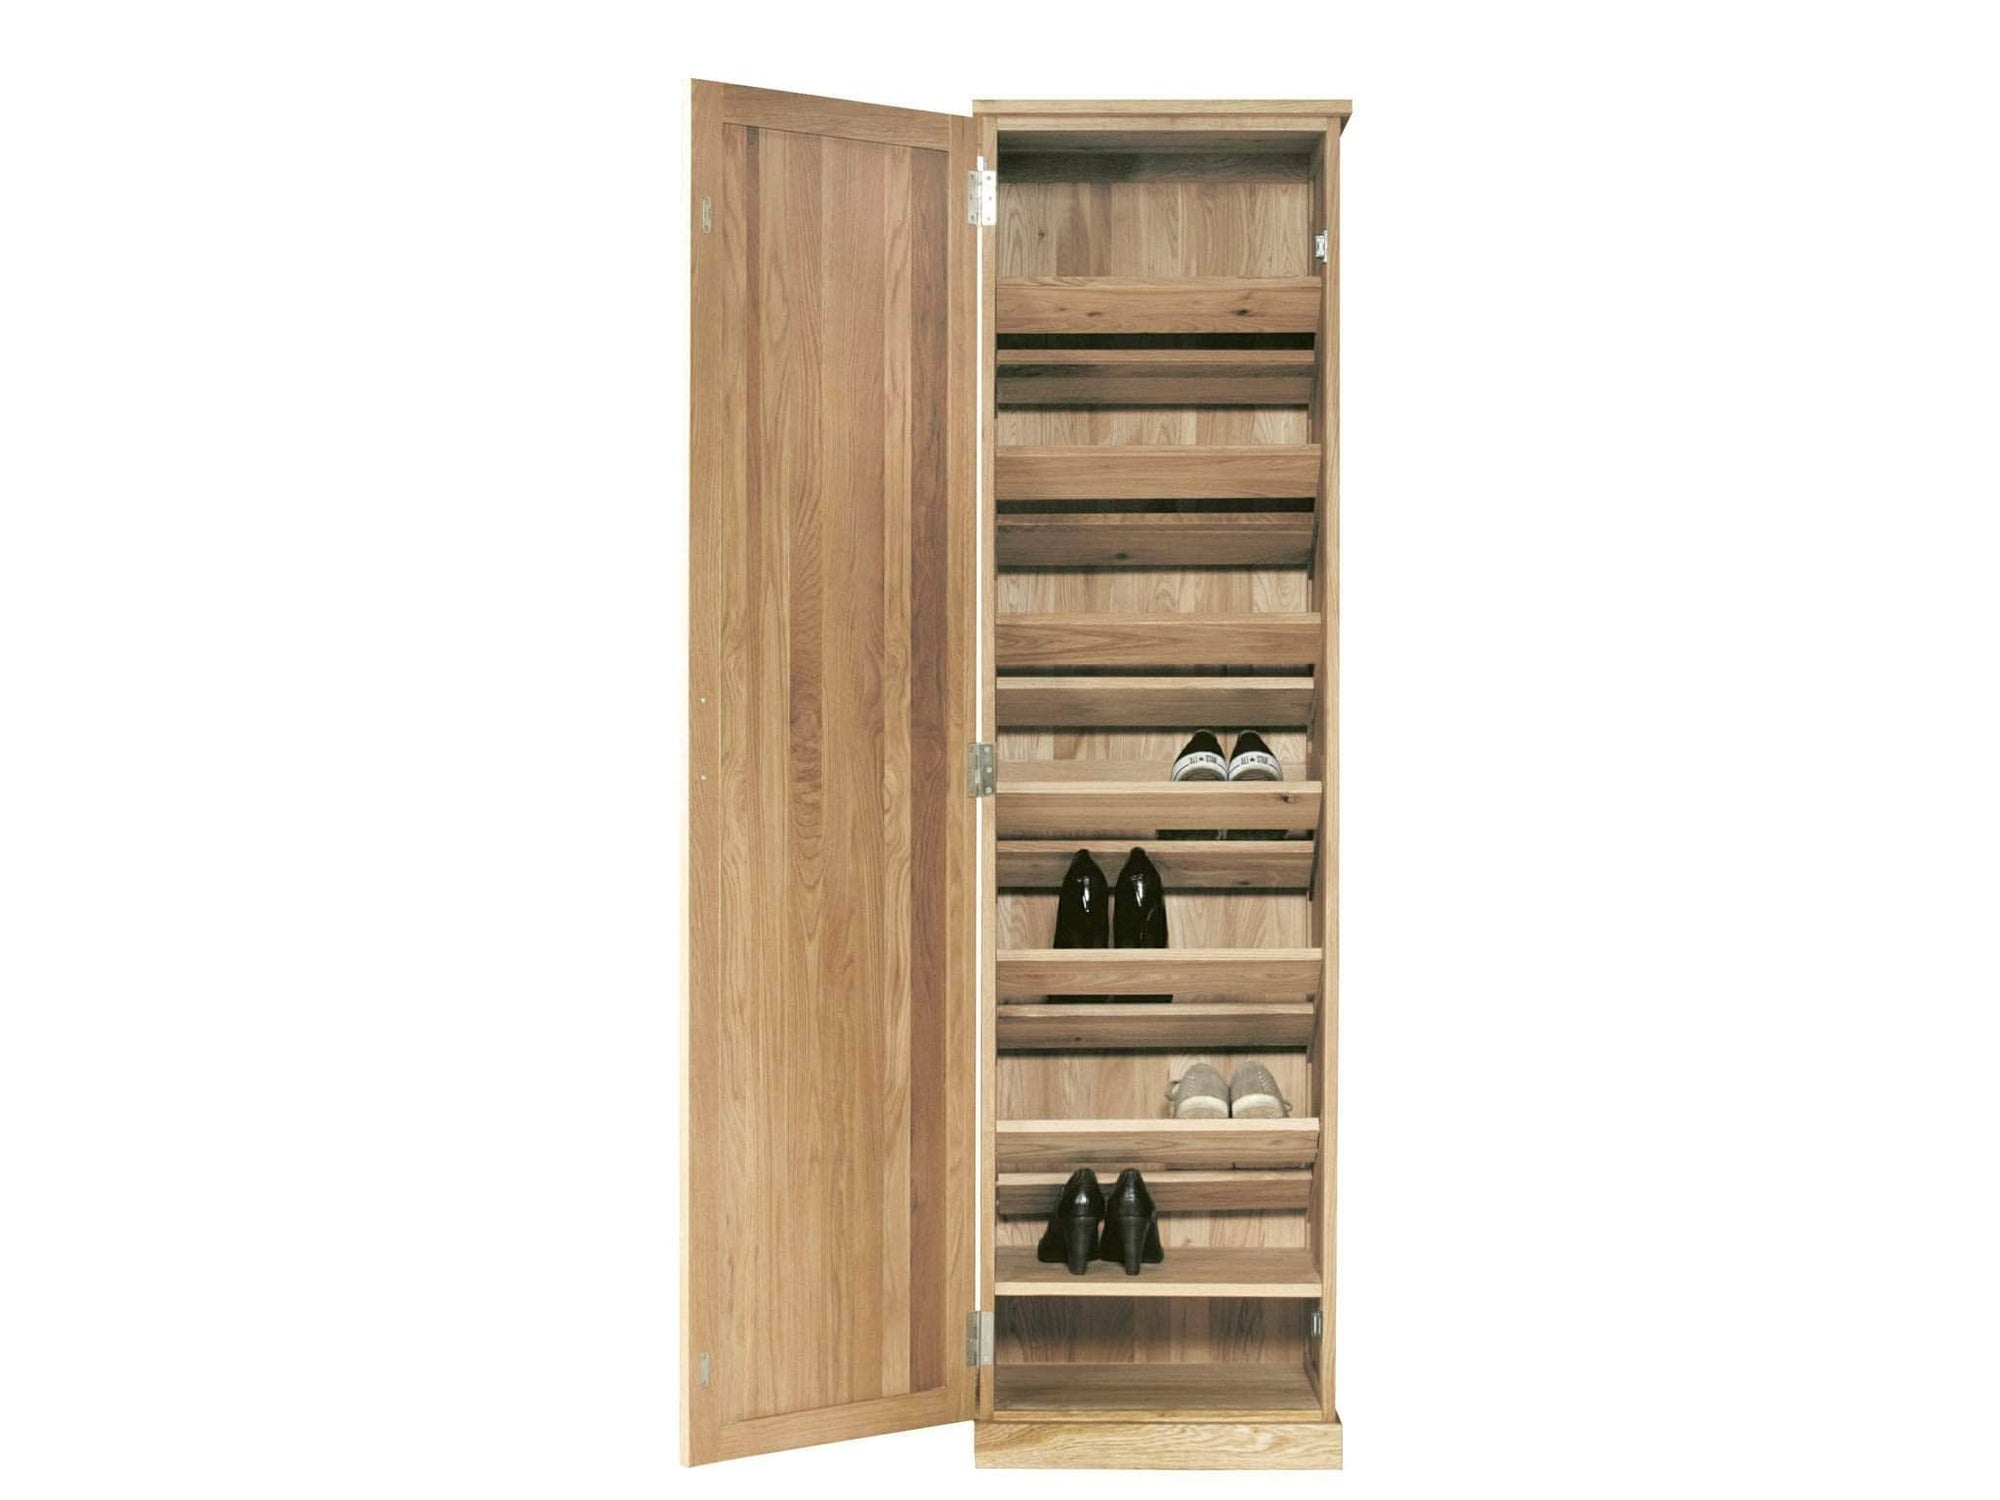 Solid oak tall shoe cabinet